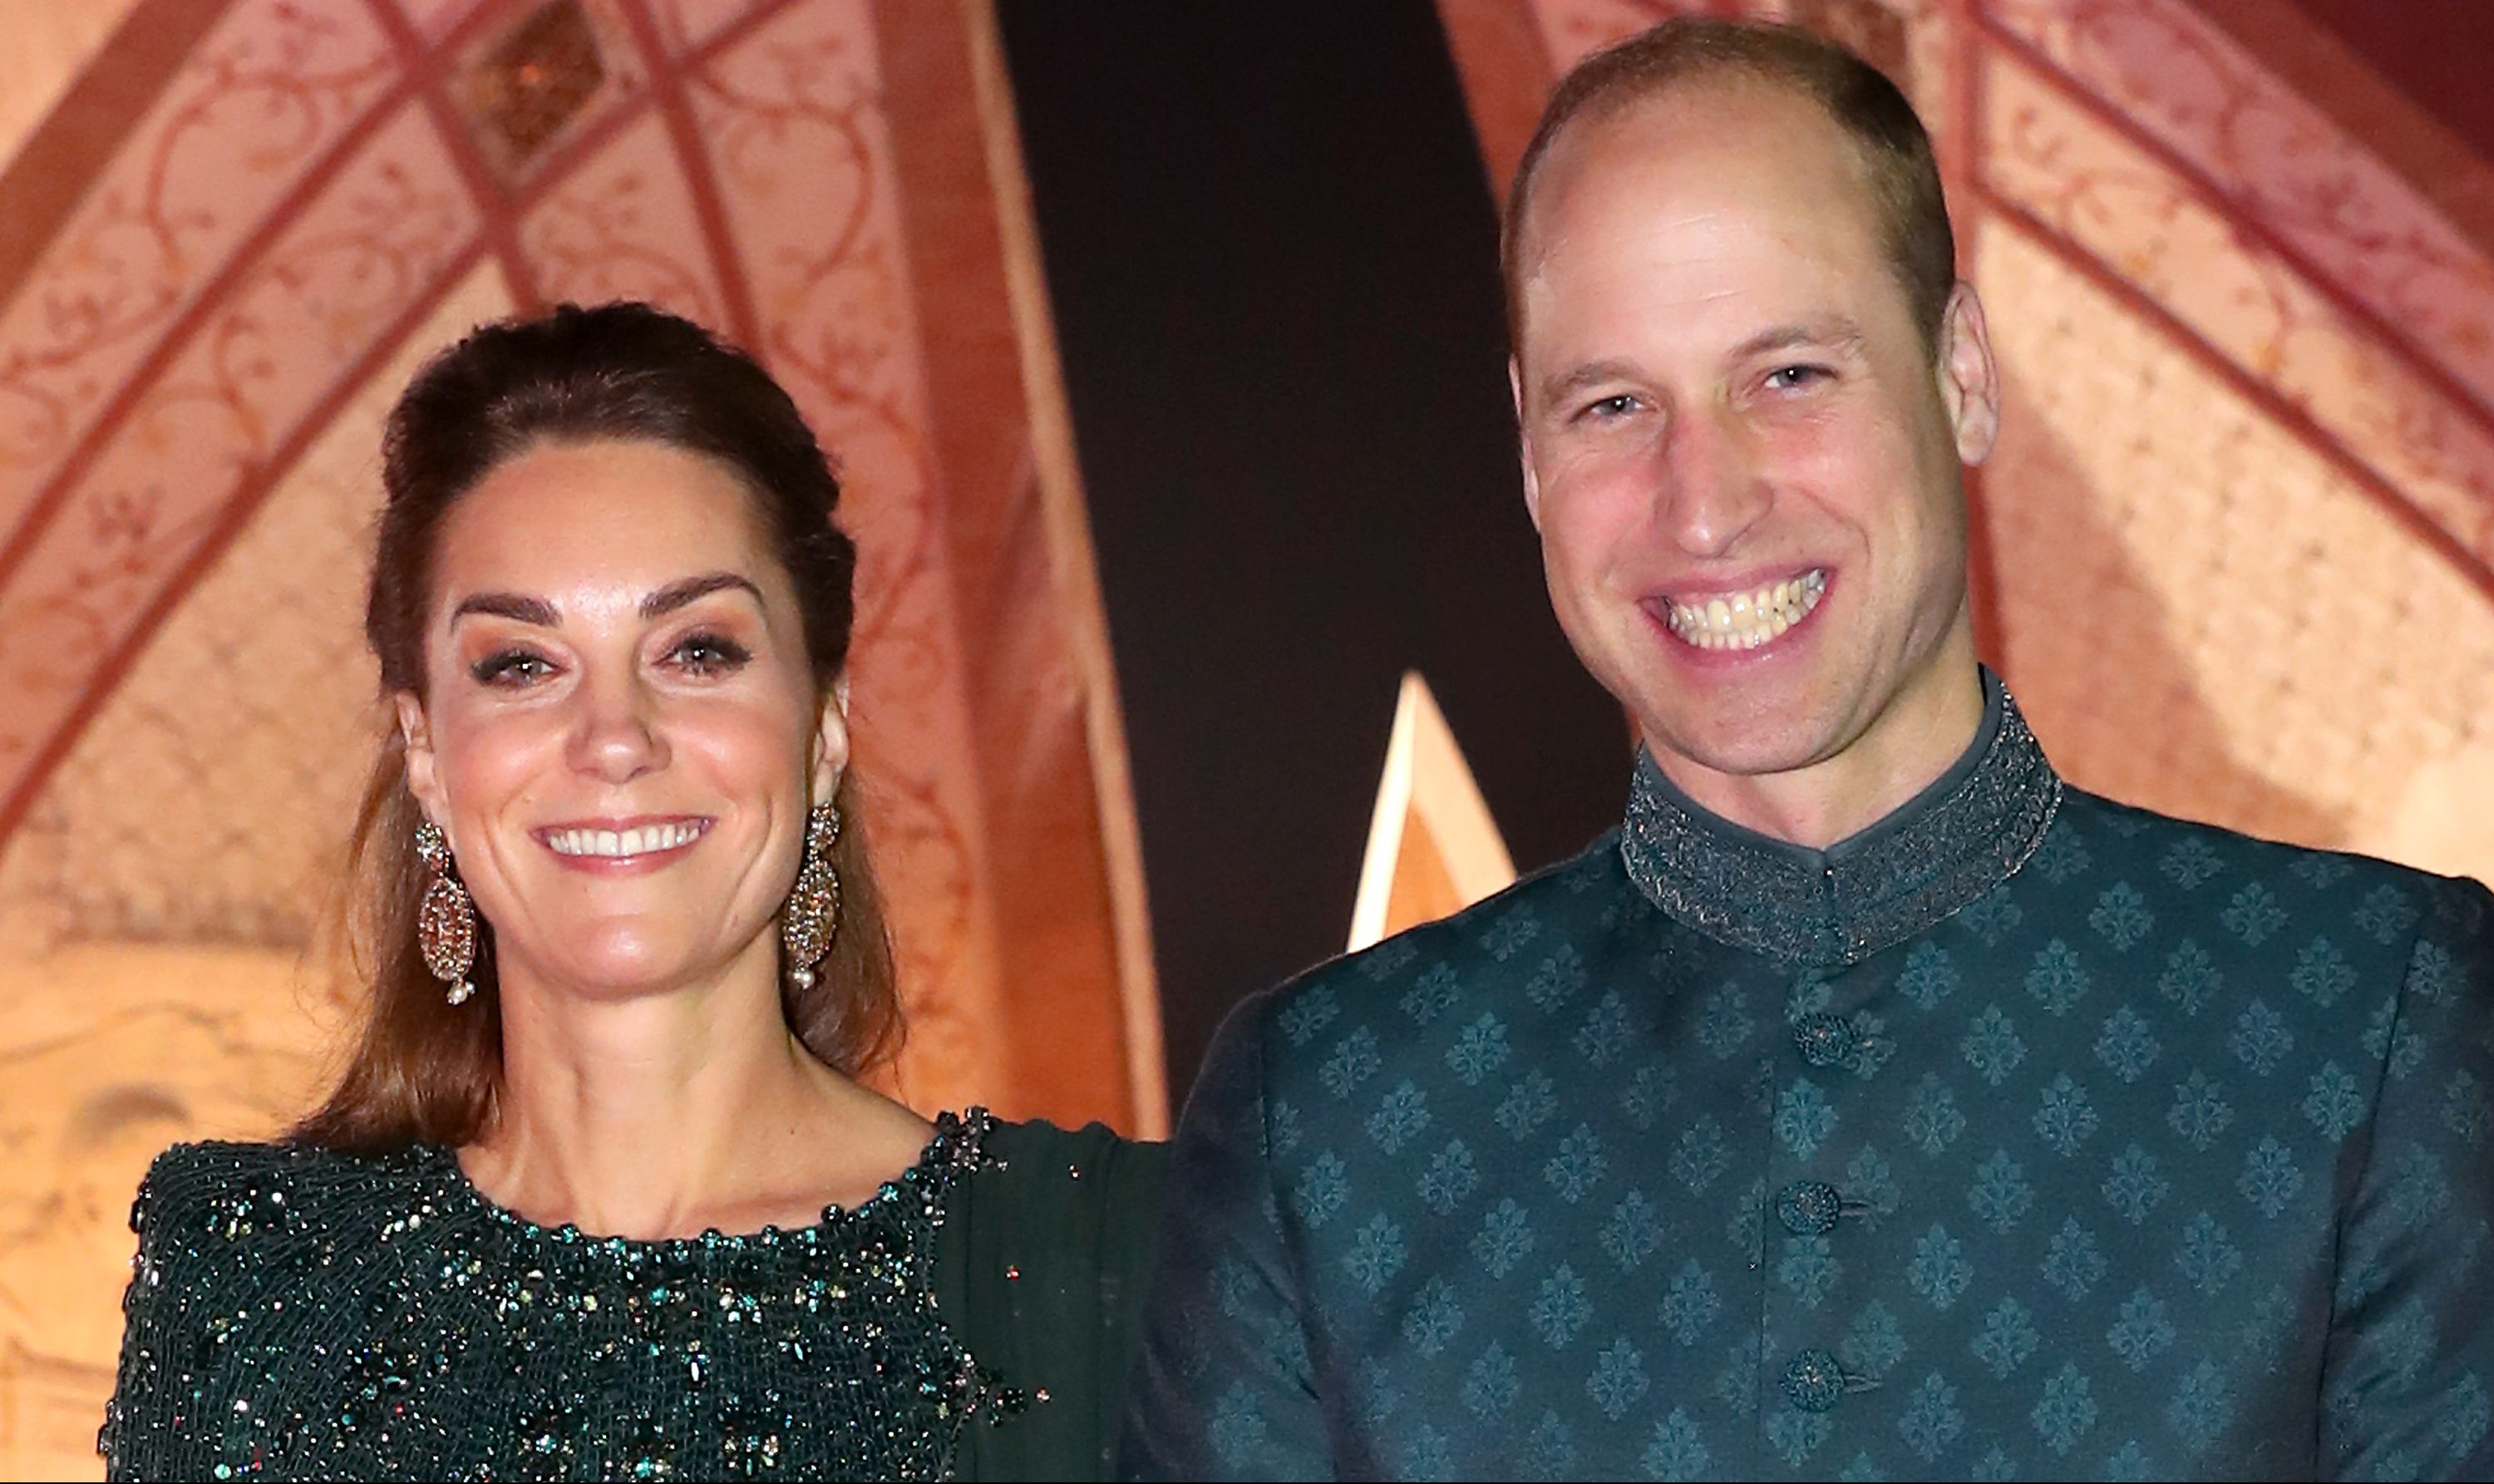 Duchess Kate glitters in green as she arrives for night out with William in a rickshaw